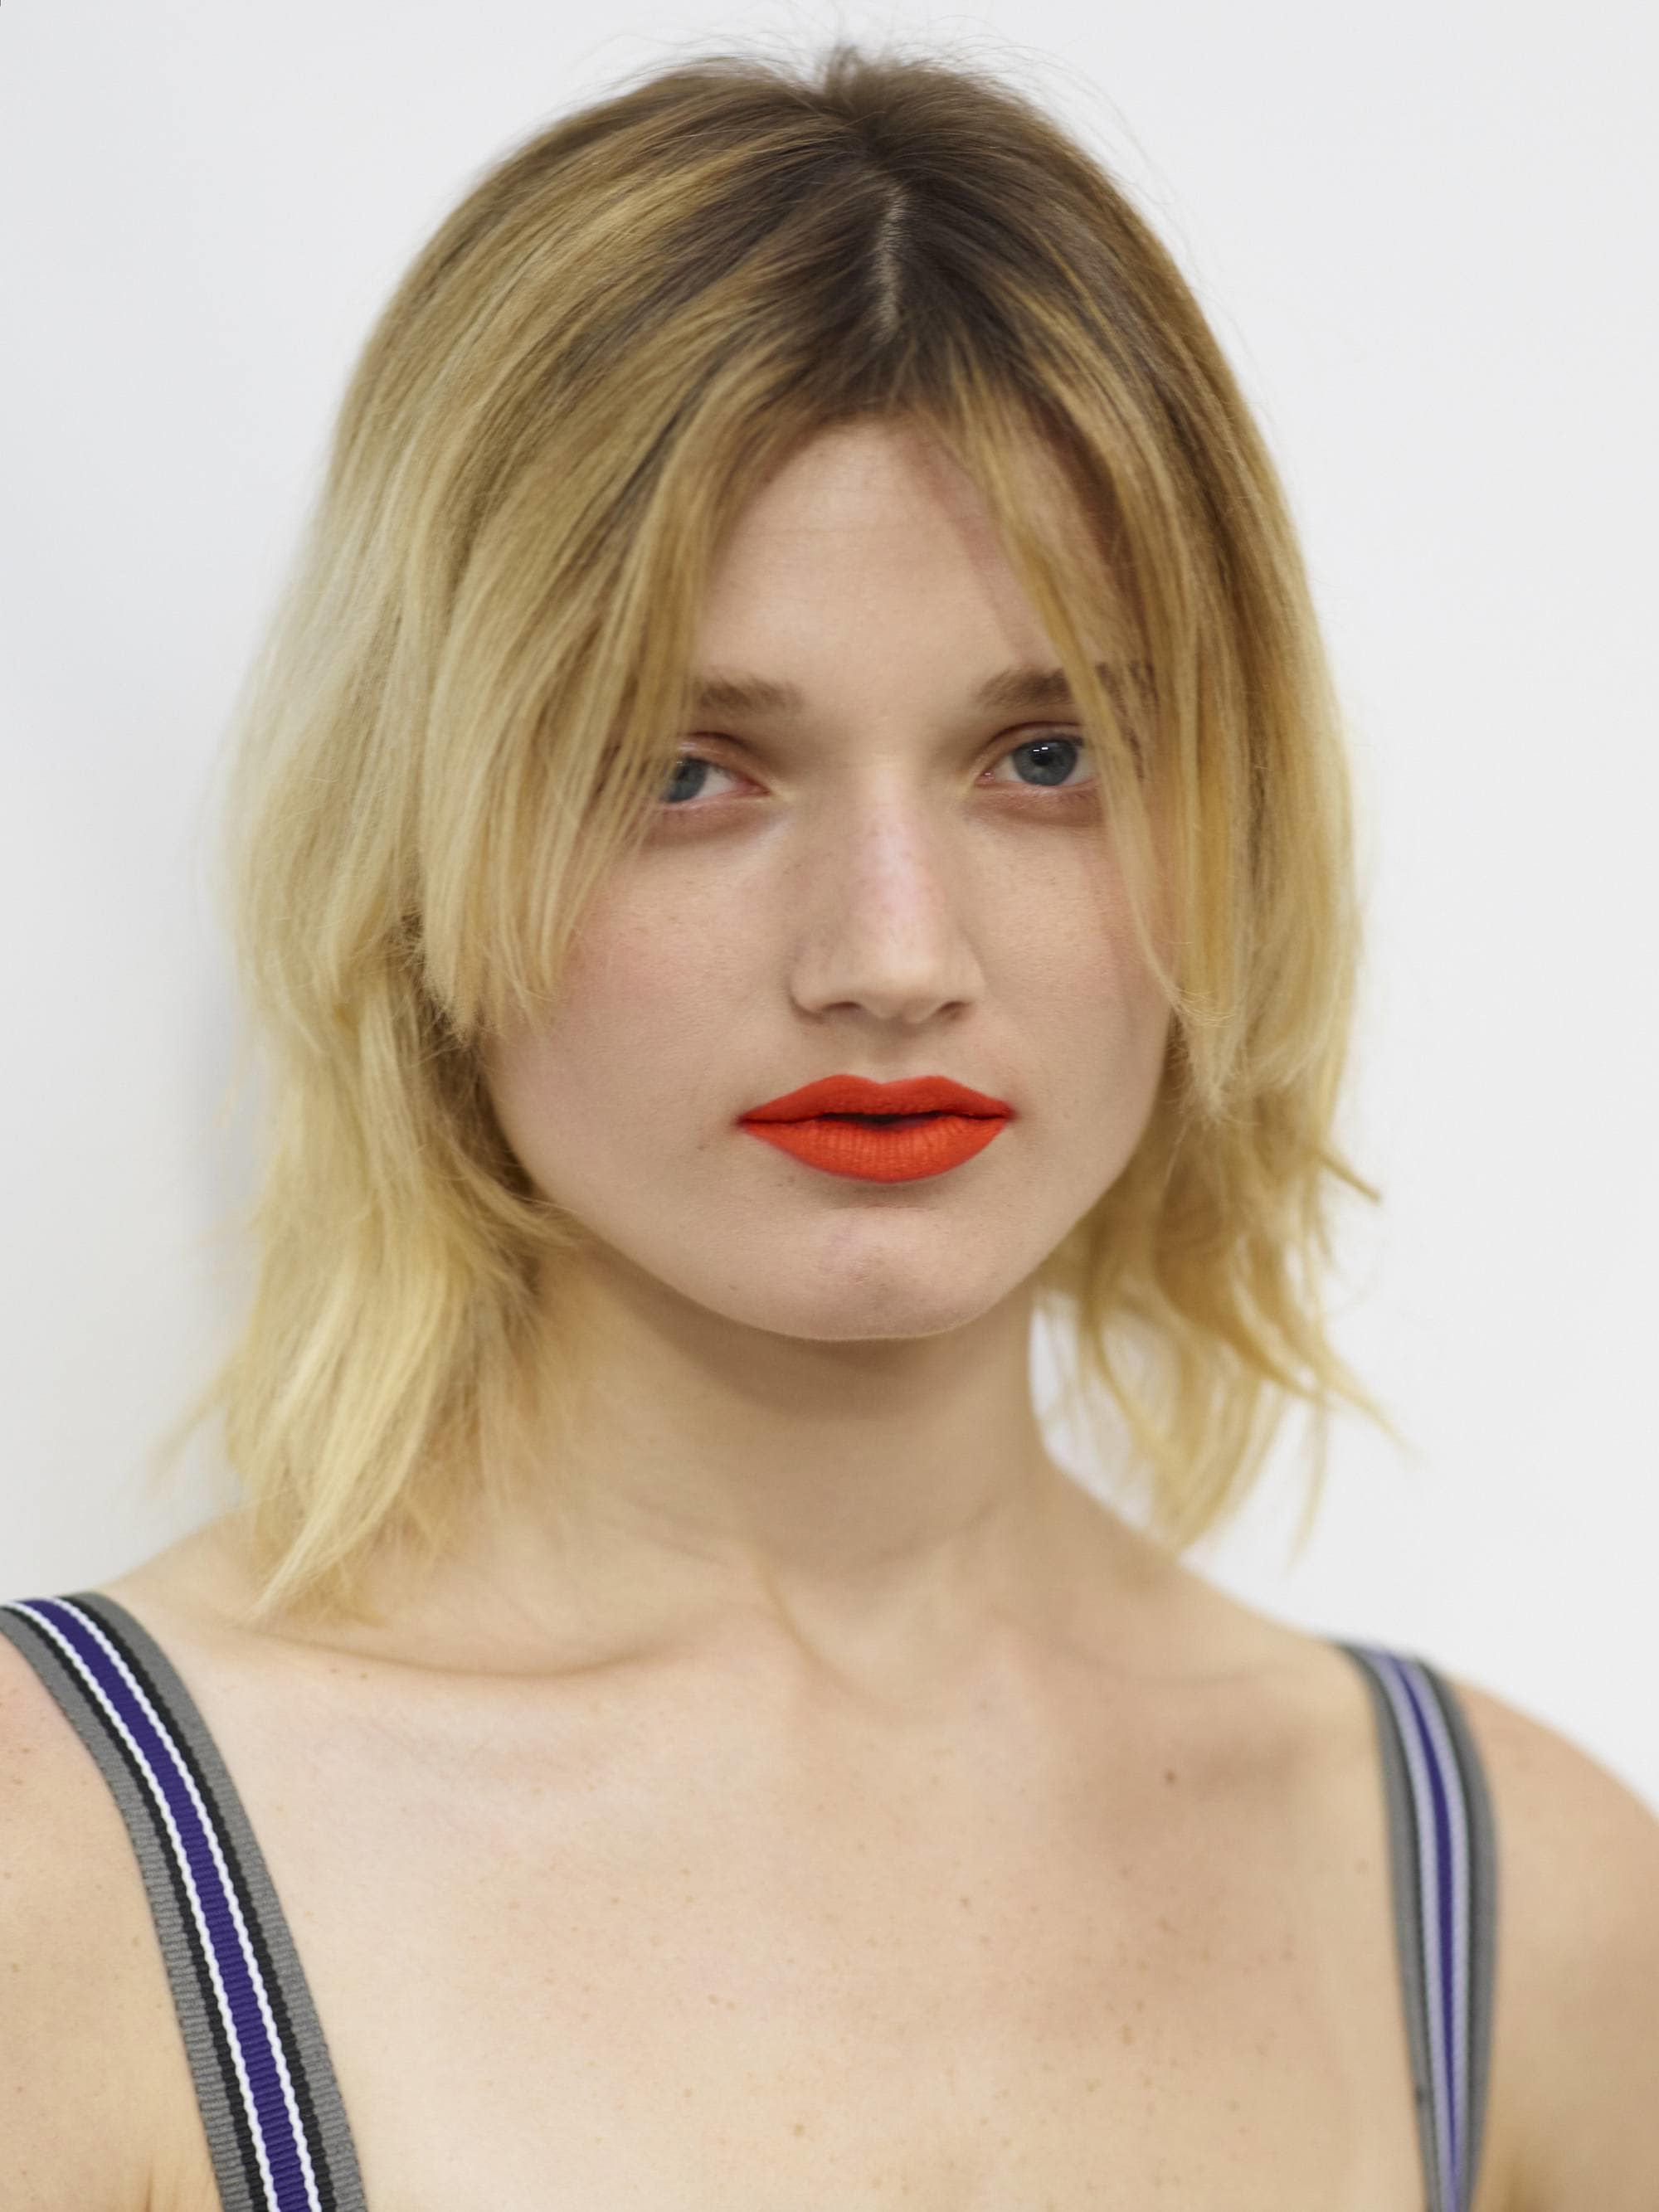 Short Blonde Hairstyles: 22 Impressive Styles That'll Inspire Your Pertaining To Short Blonde Hair With Bangs (View 11 of 25)